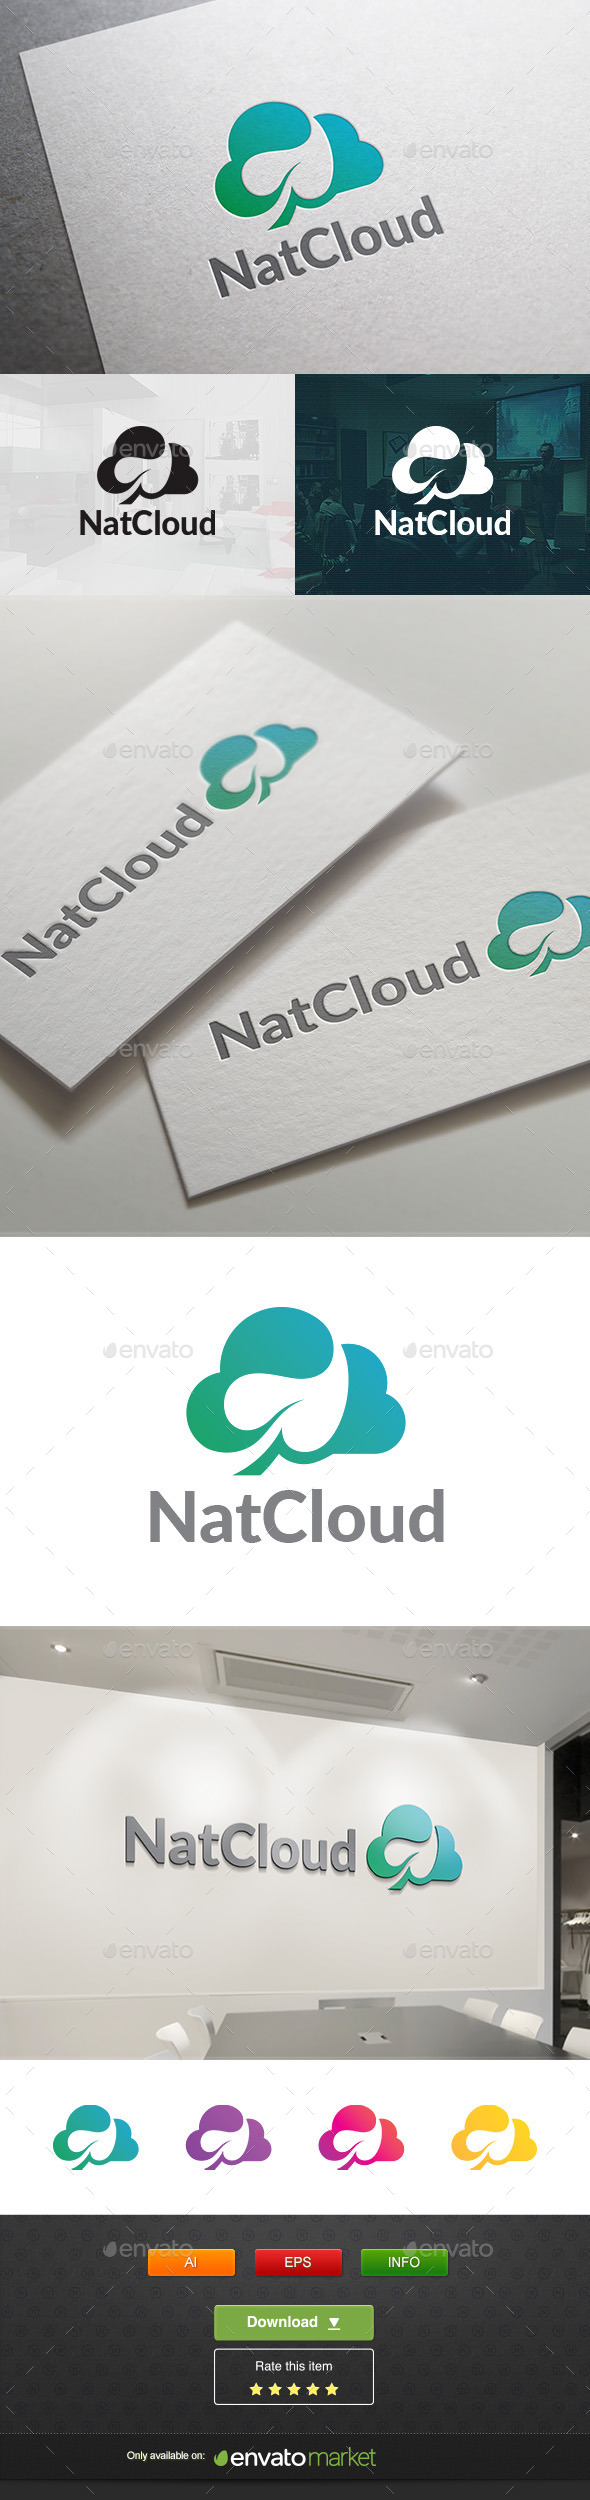 Natcloud - Objects Logo Templates